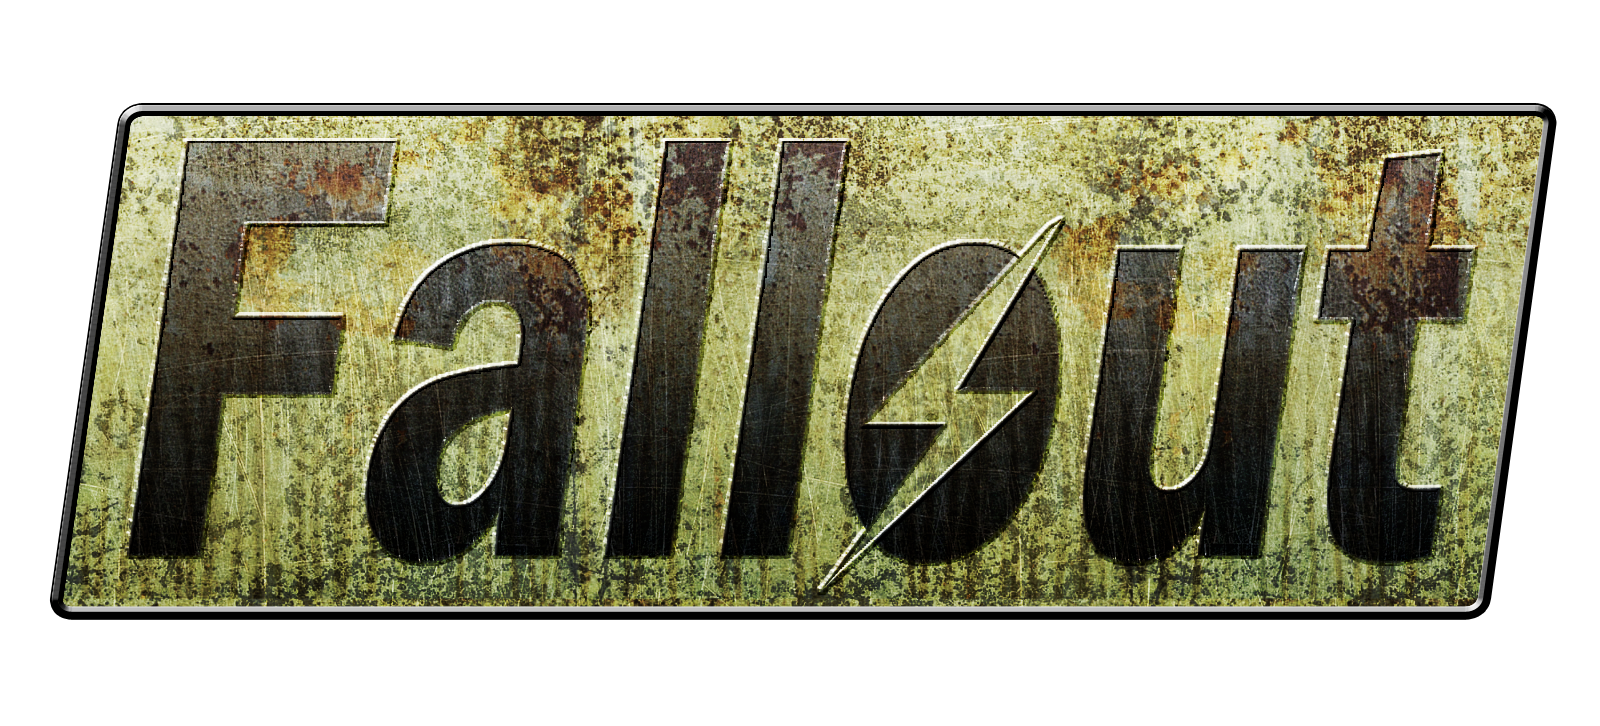 Fallout Title.png - Fallout, Transparent background PNG HD thumbnail